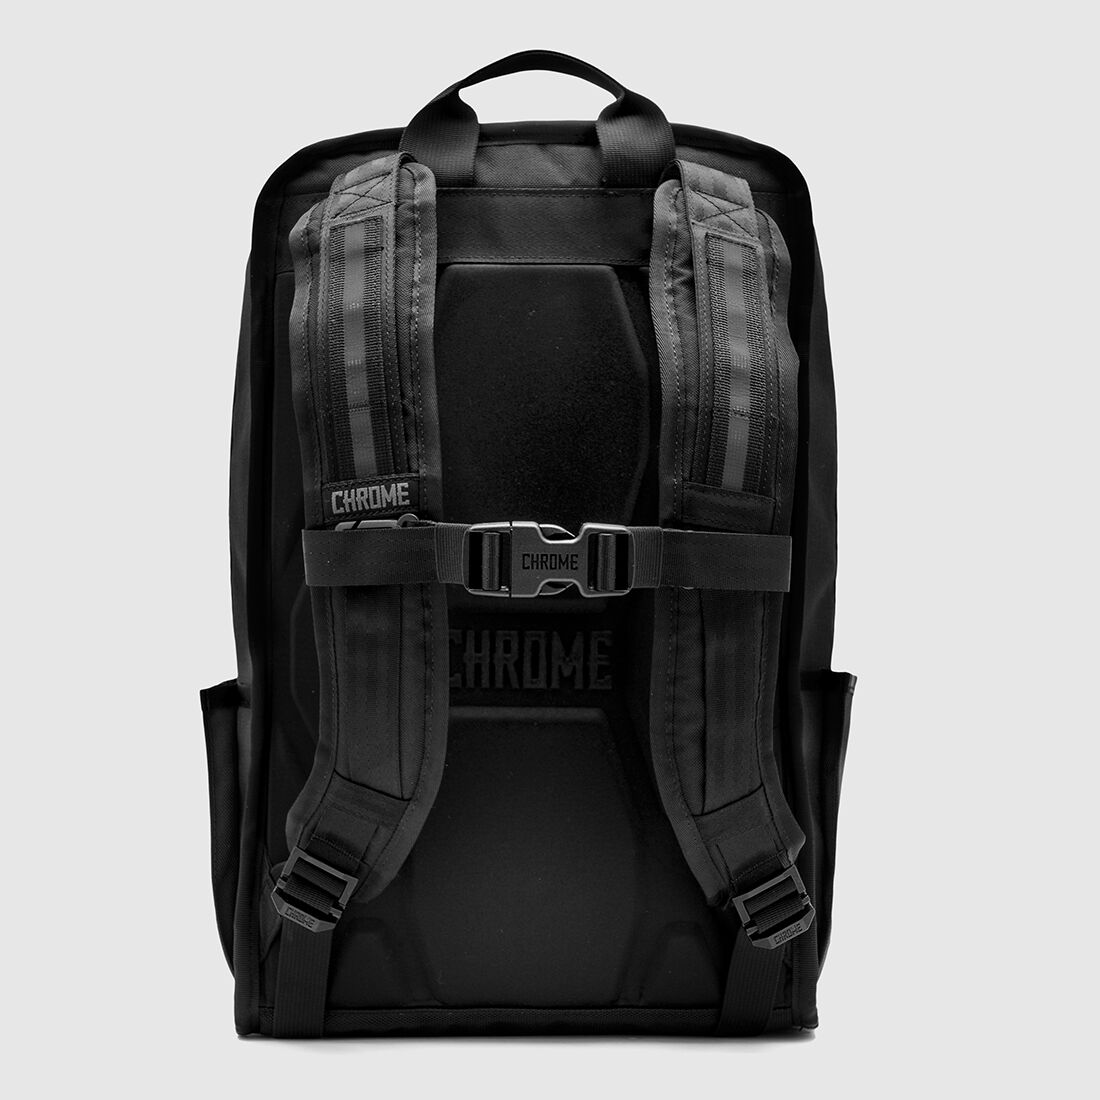 1e0e0d53129500 11 backpack cheap   OFF72% The Largest Catalog Discounts